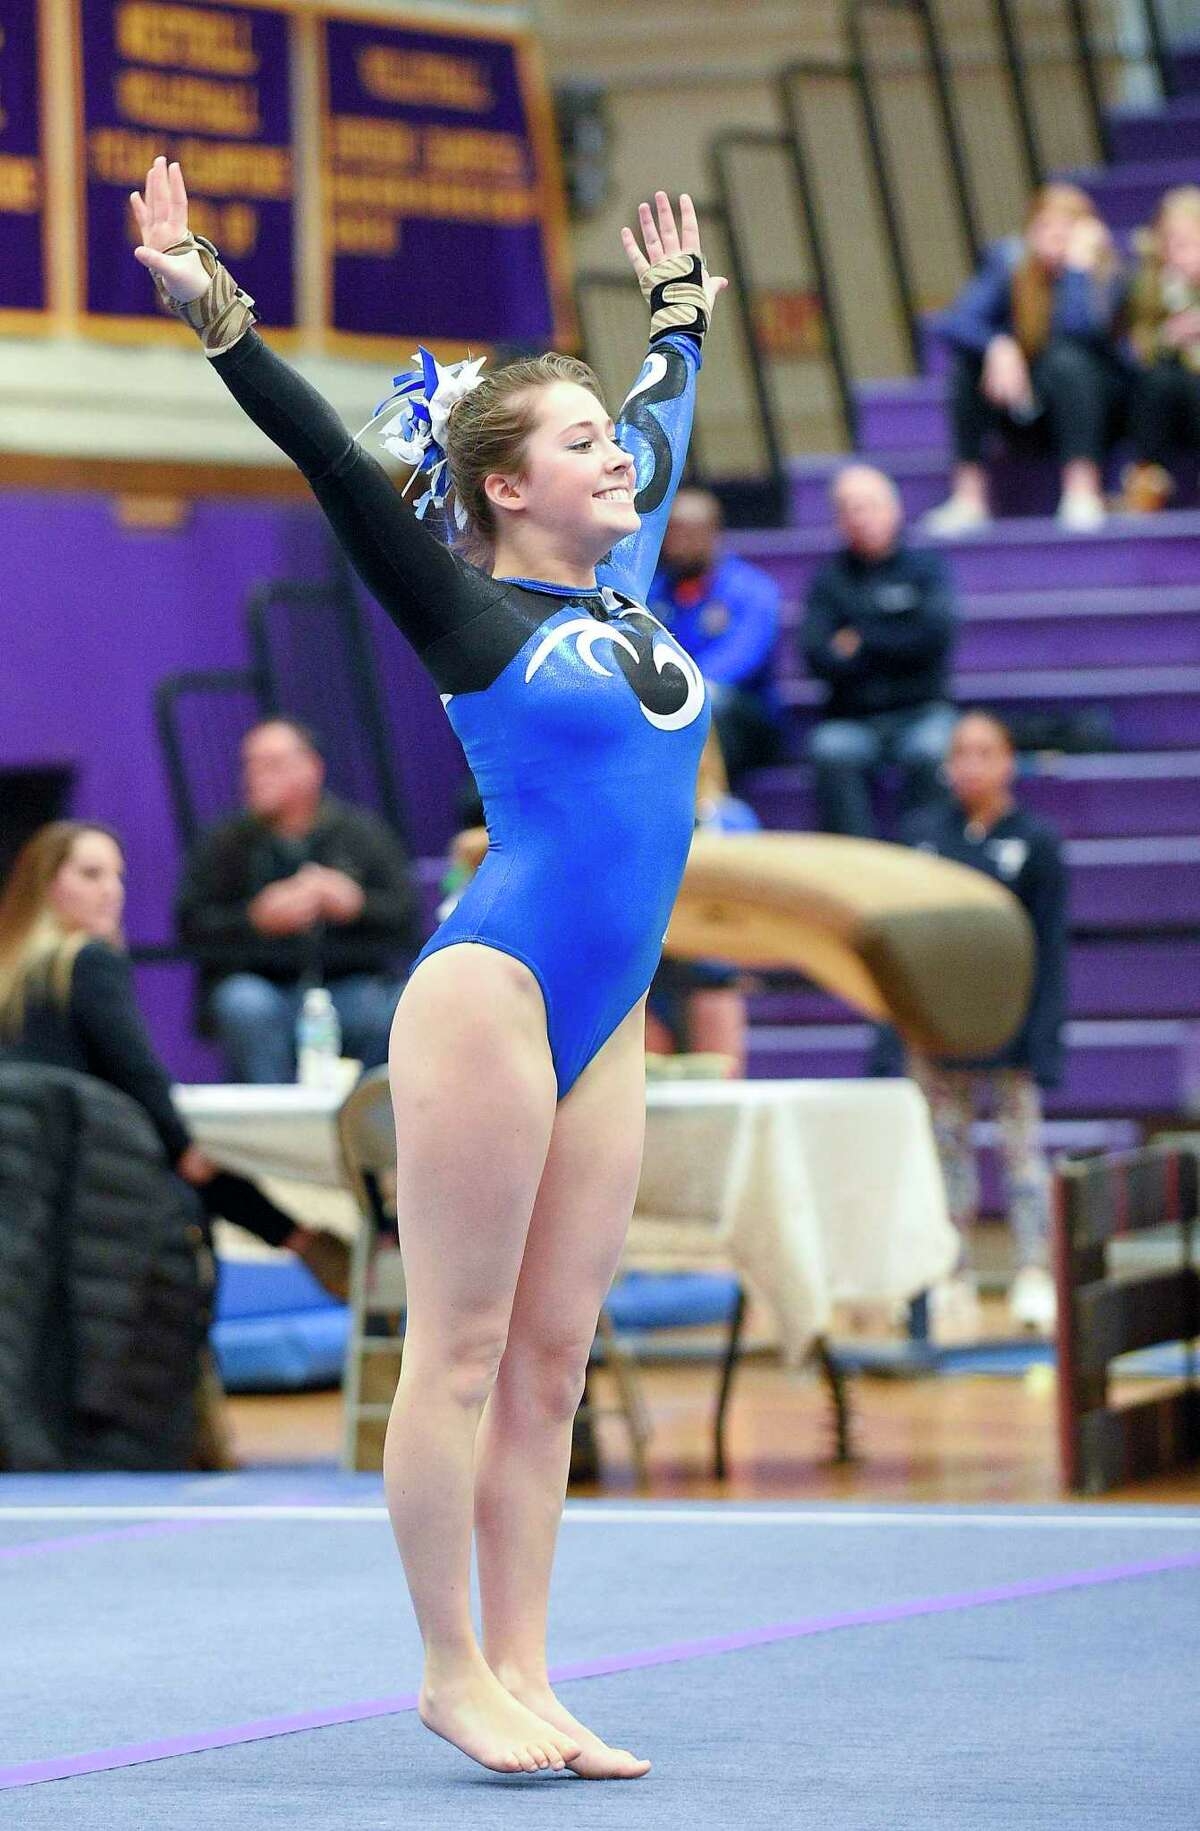 Competitors compete in the Ro Carlucci FCIAC Championship Meet in gymnastics at Westhill High School in Stamford, Conn. on Saturday, Feb. 9, 2019.